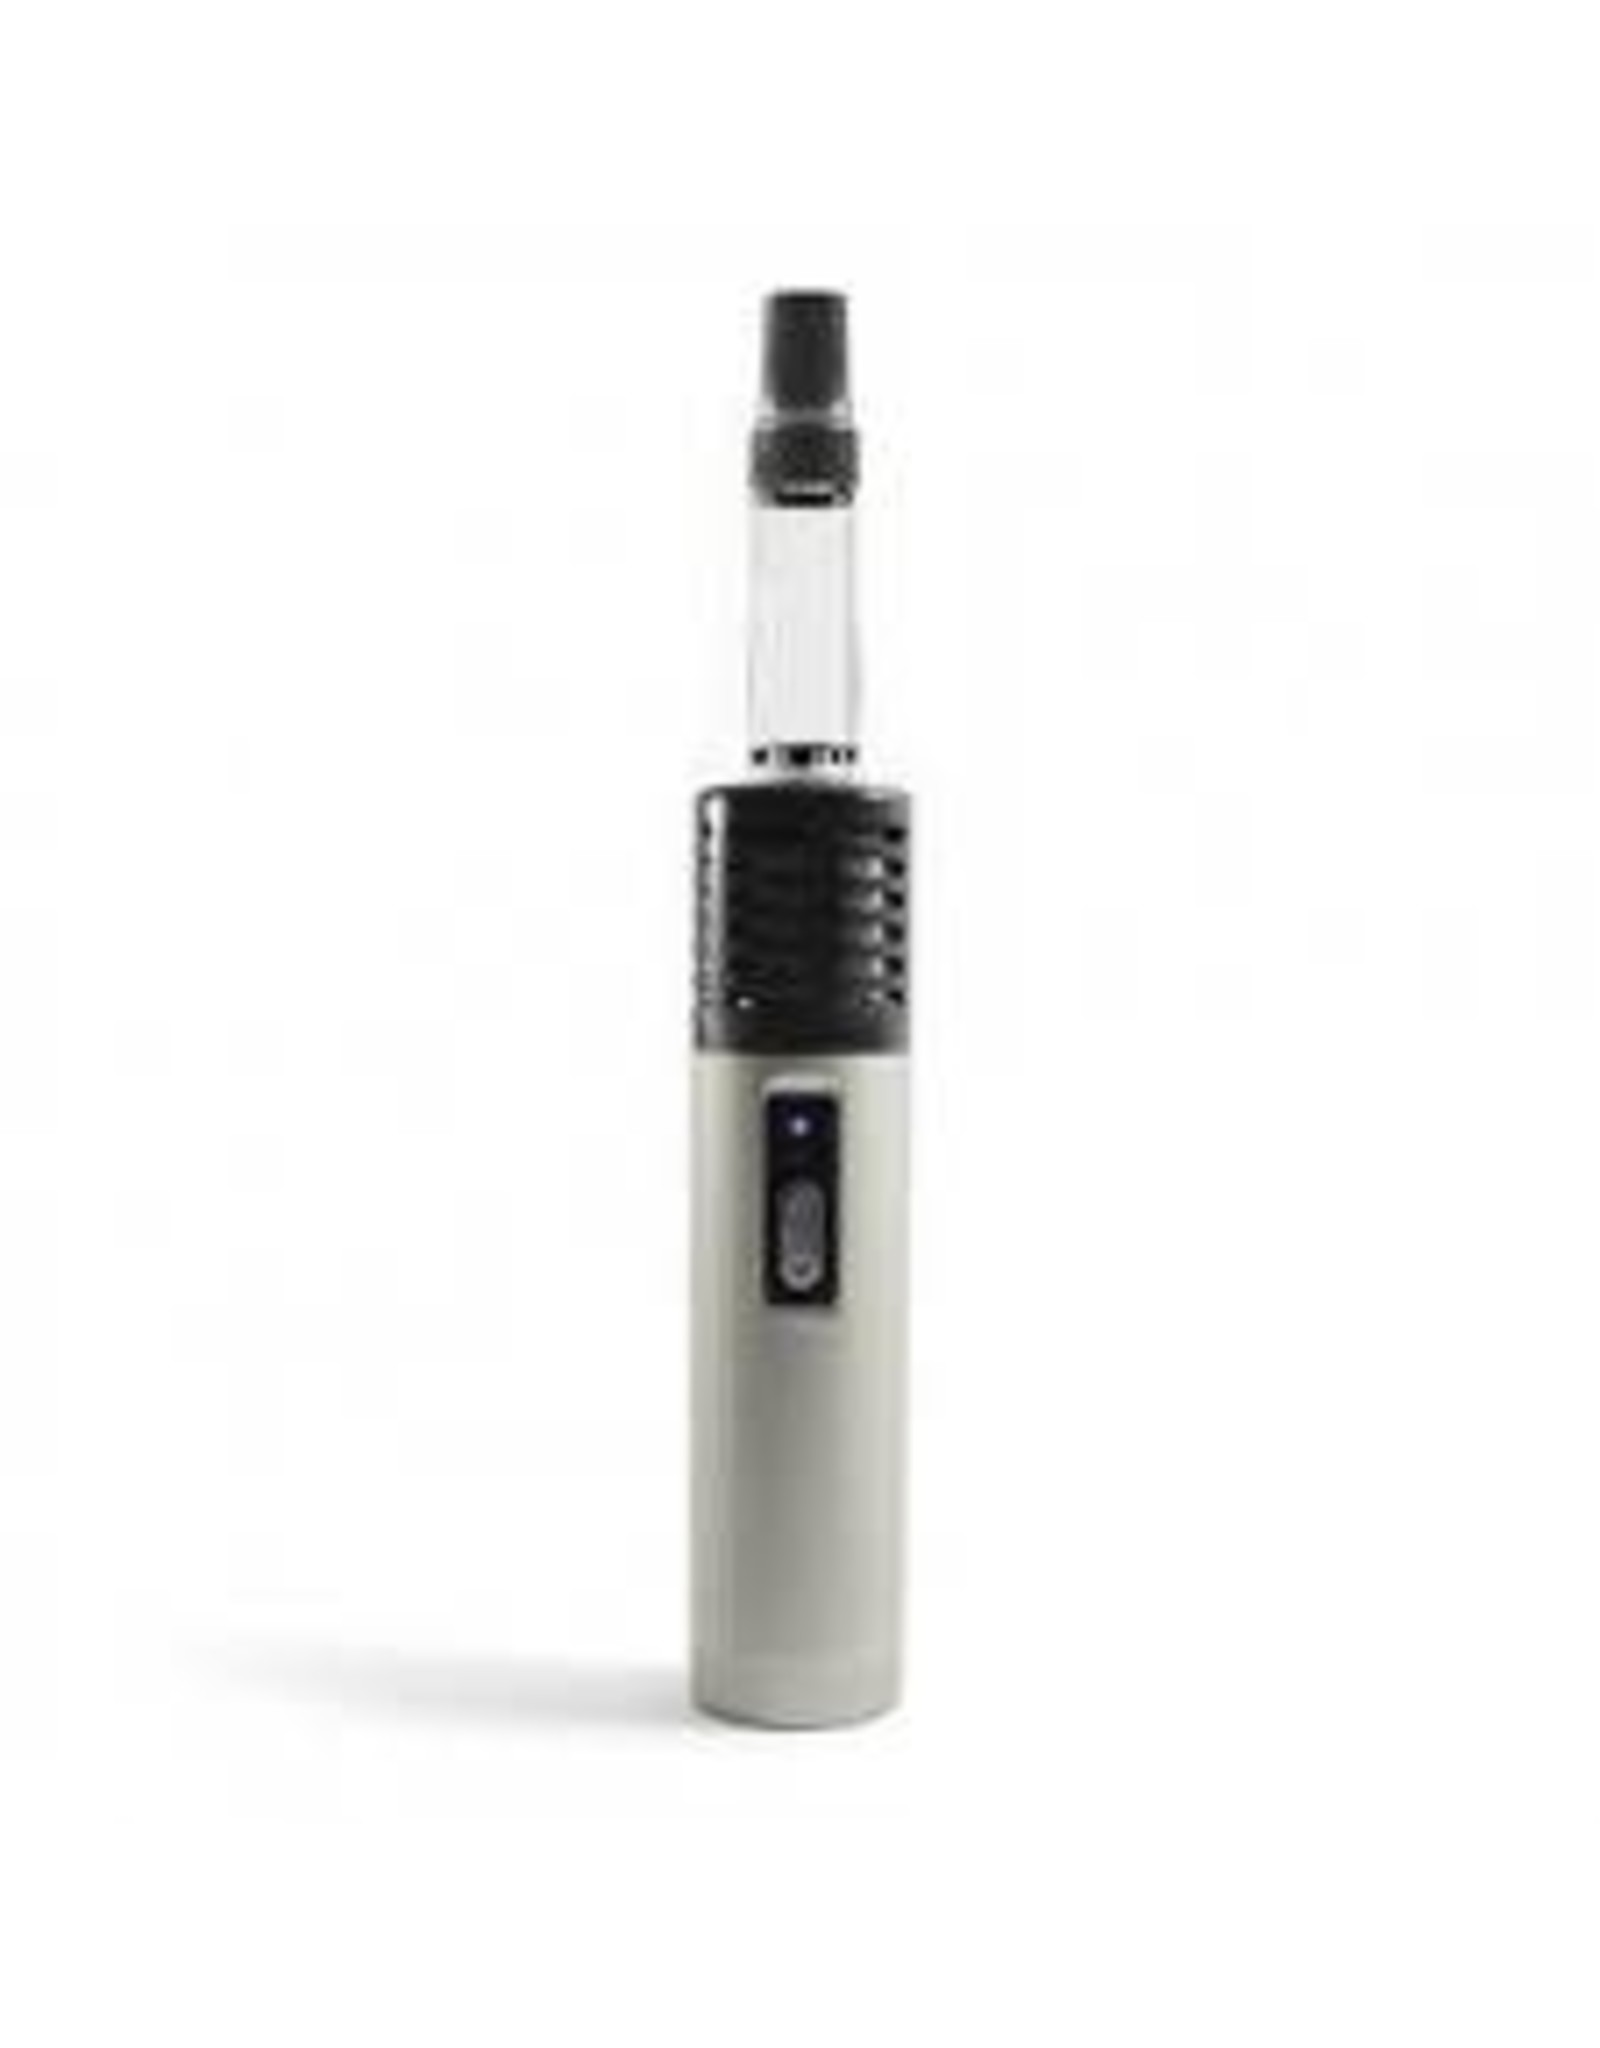 ARIZER ARIZER AIR VAPORIZER